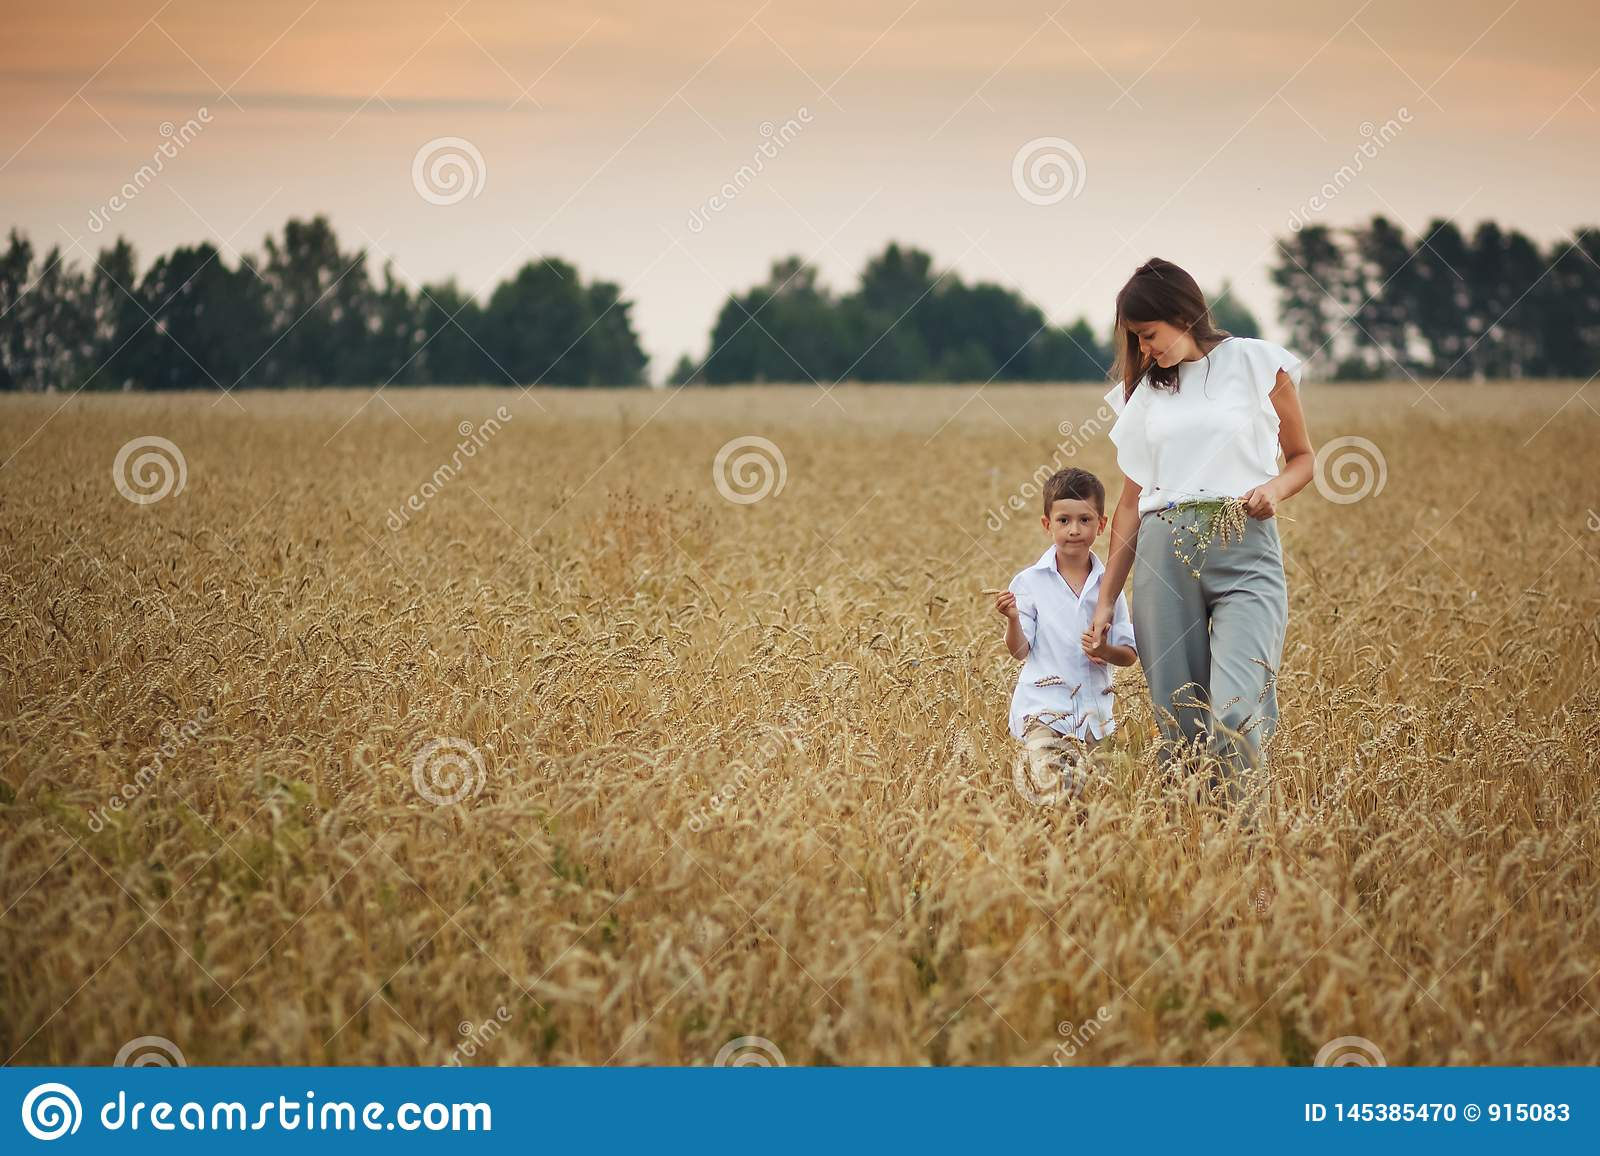 Mother with son smiling holding hands in a field in summer. The concept of maternal love and tenderness, the relationship between